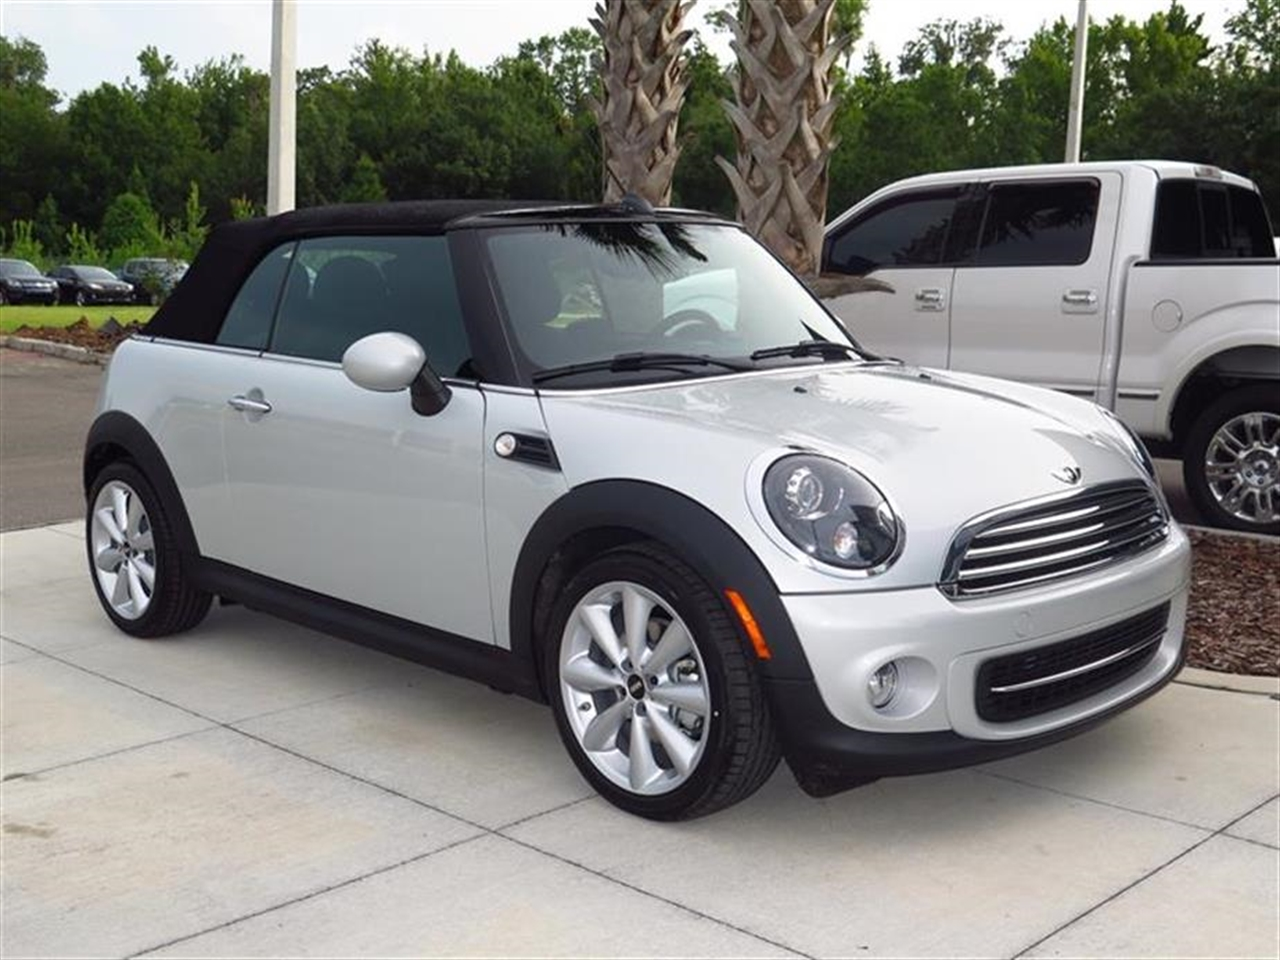 2014 MINI COOPER CONVERTIBLE 2dr 0 miles 2 12V DC Power Outlets 2 Seatback Storage Pockets 4 Per